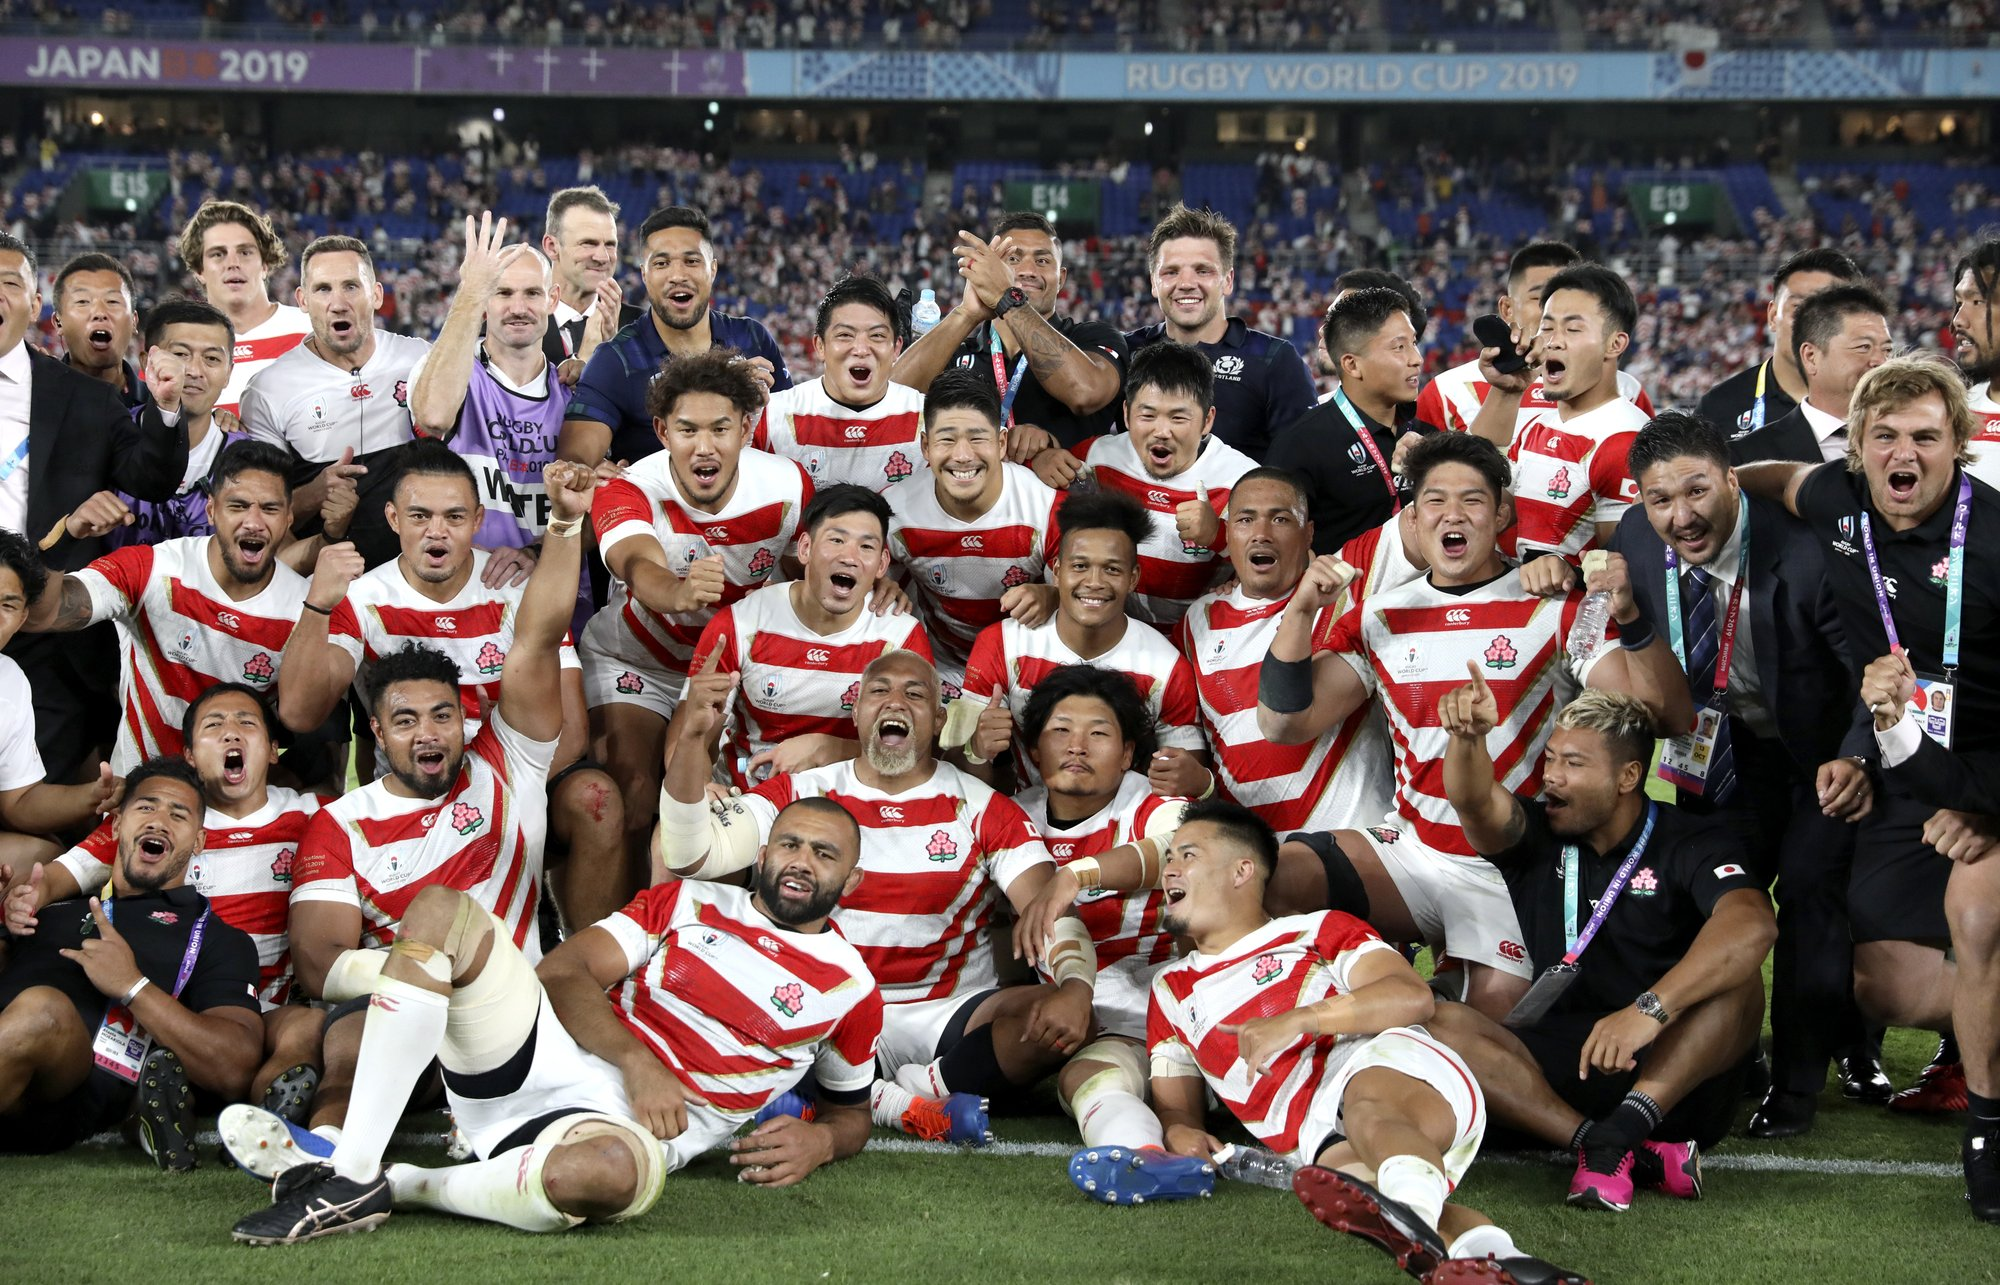 Japan's rugby team shows off the changing face of the nation